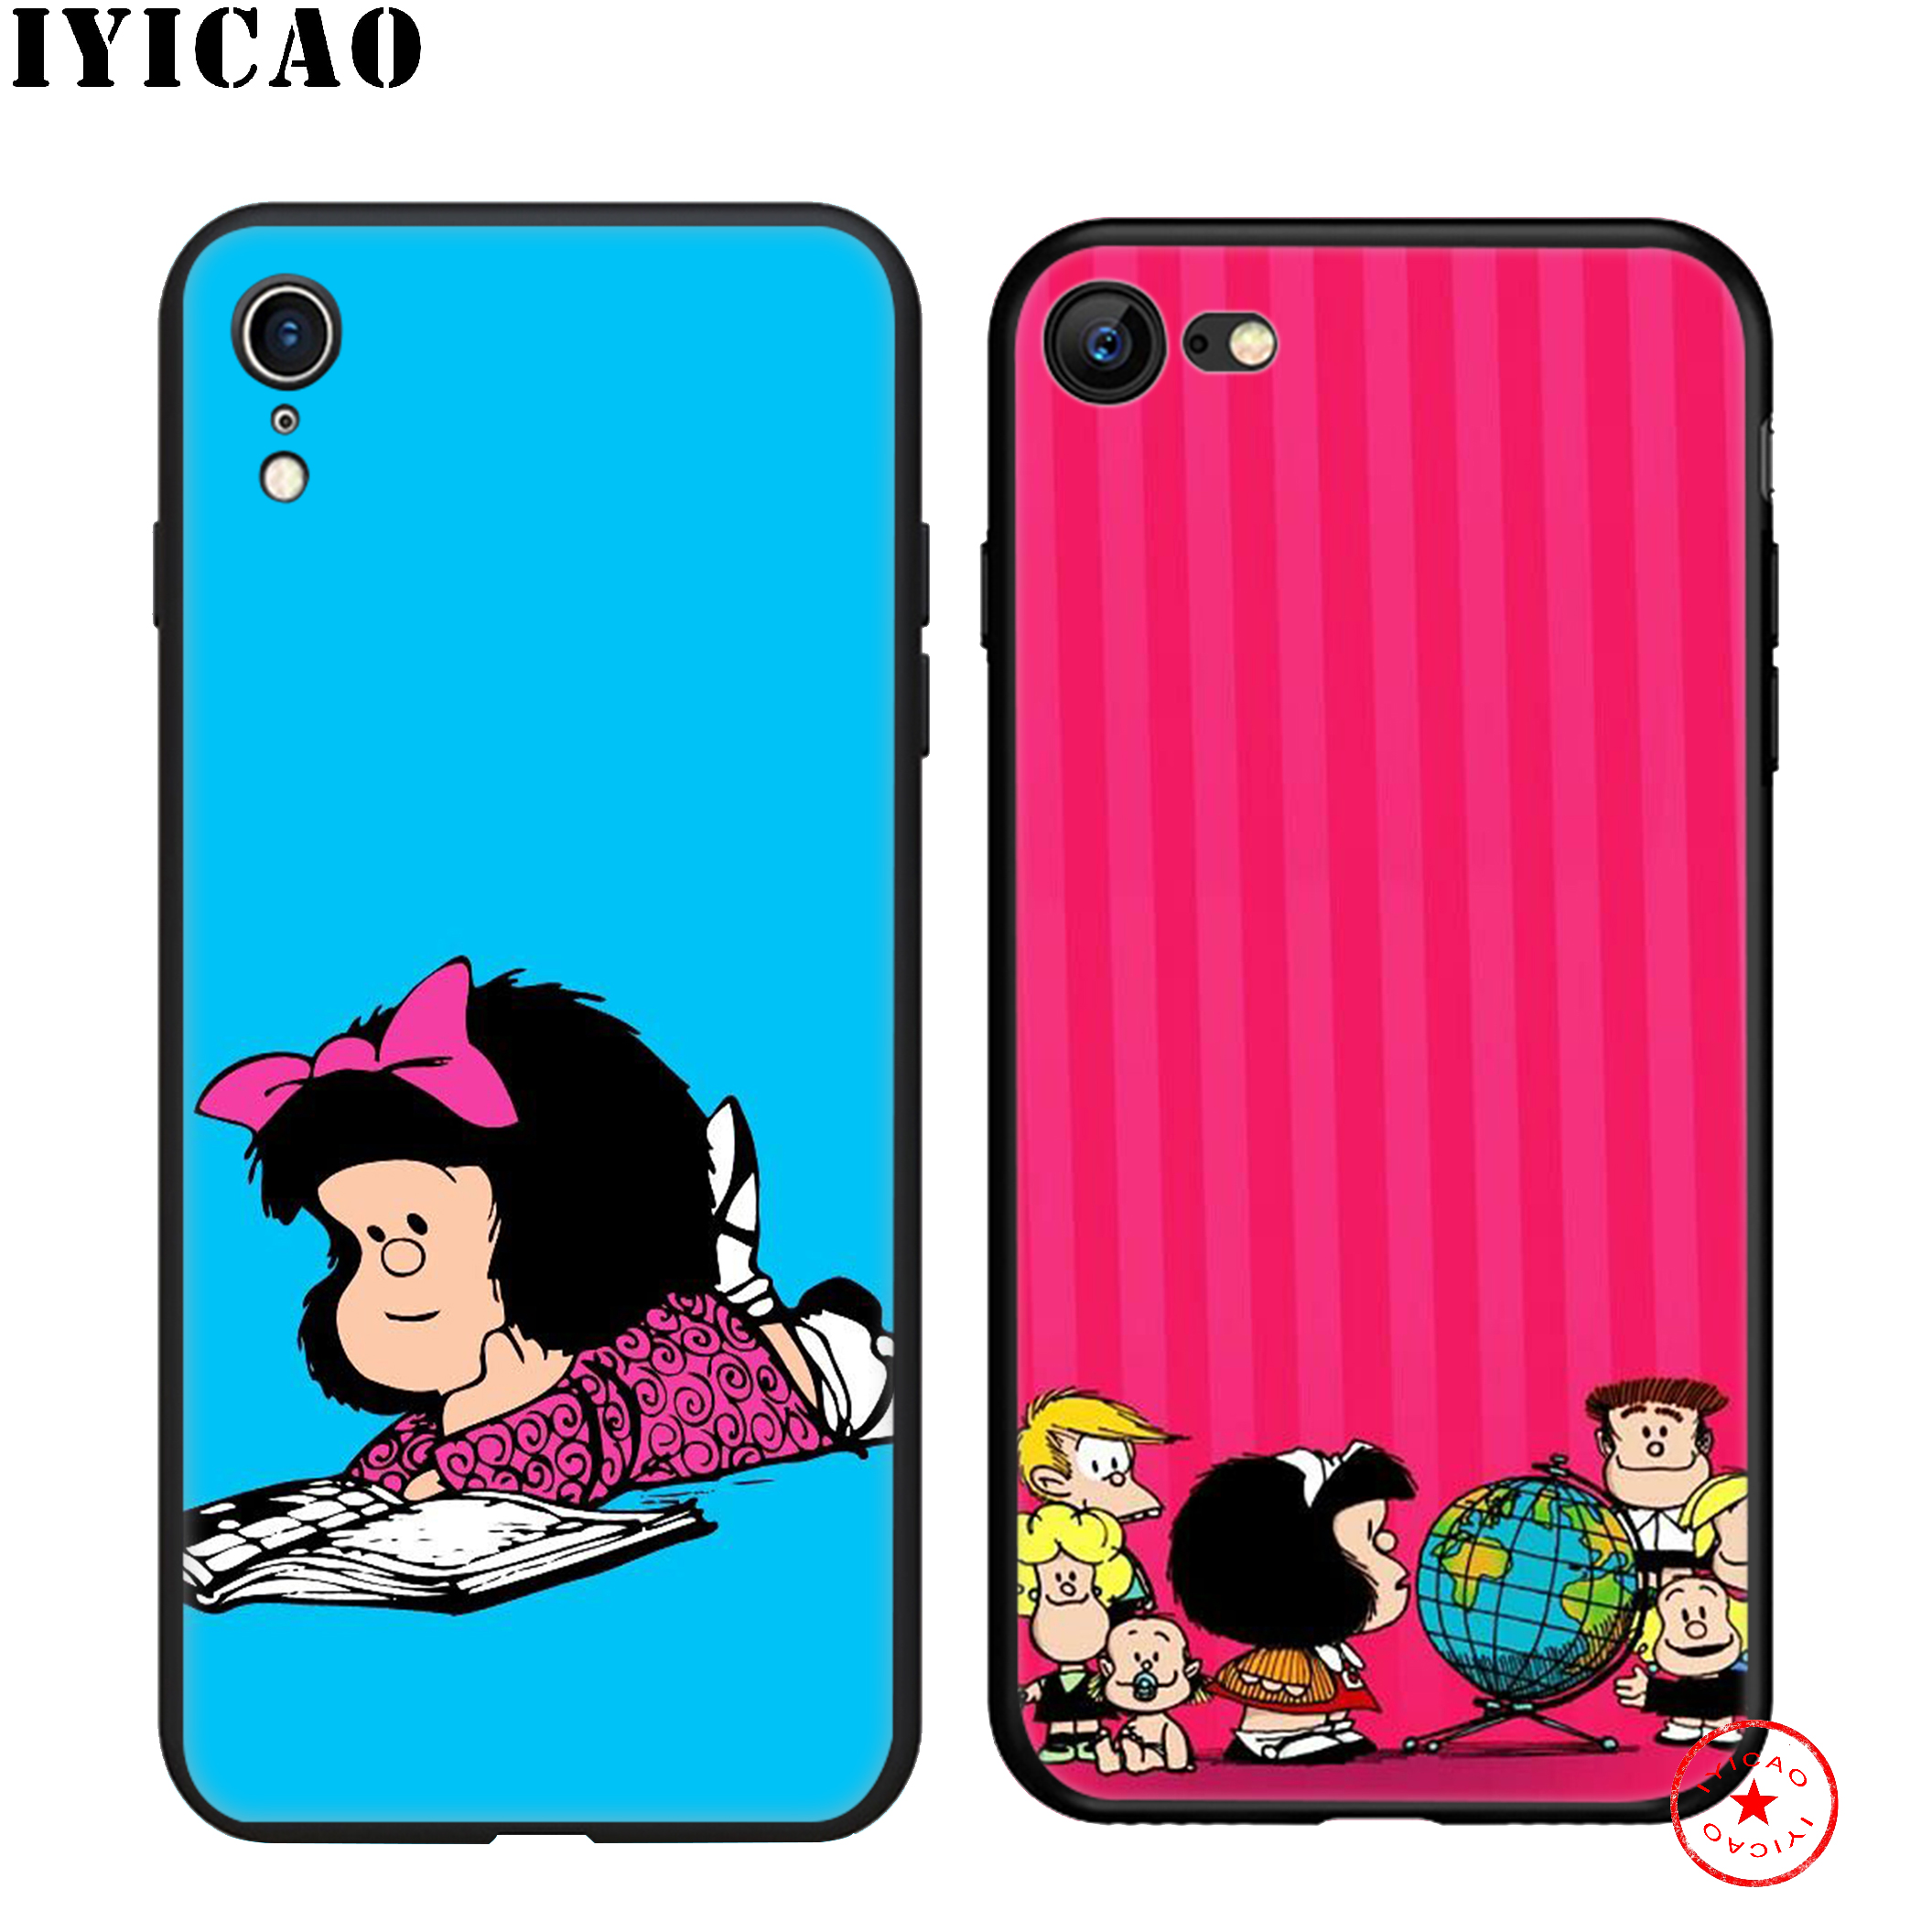 IYICAO Lovely Mafalda Soft Black Silicone Case for iPhone 11 Pro Xr Xs Max X or 10 8 7 6 6S Plus 5 5S SE in Fitted Cases from Cellphones Telecommunications